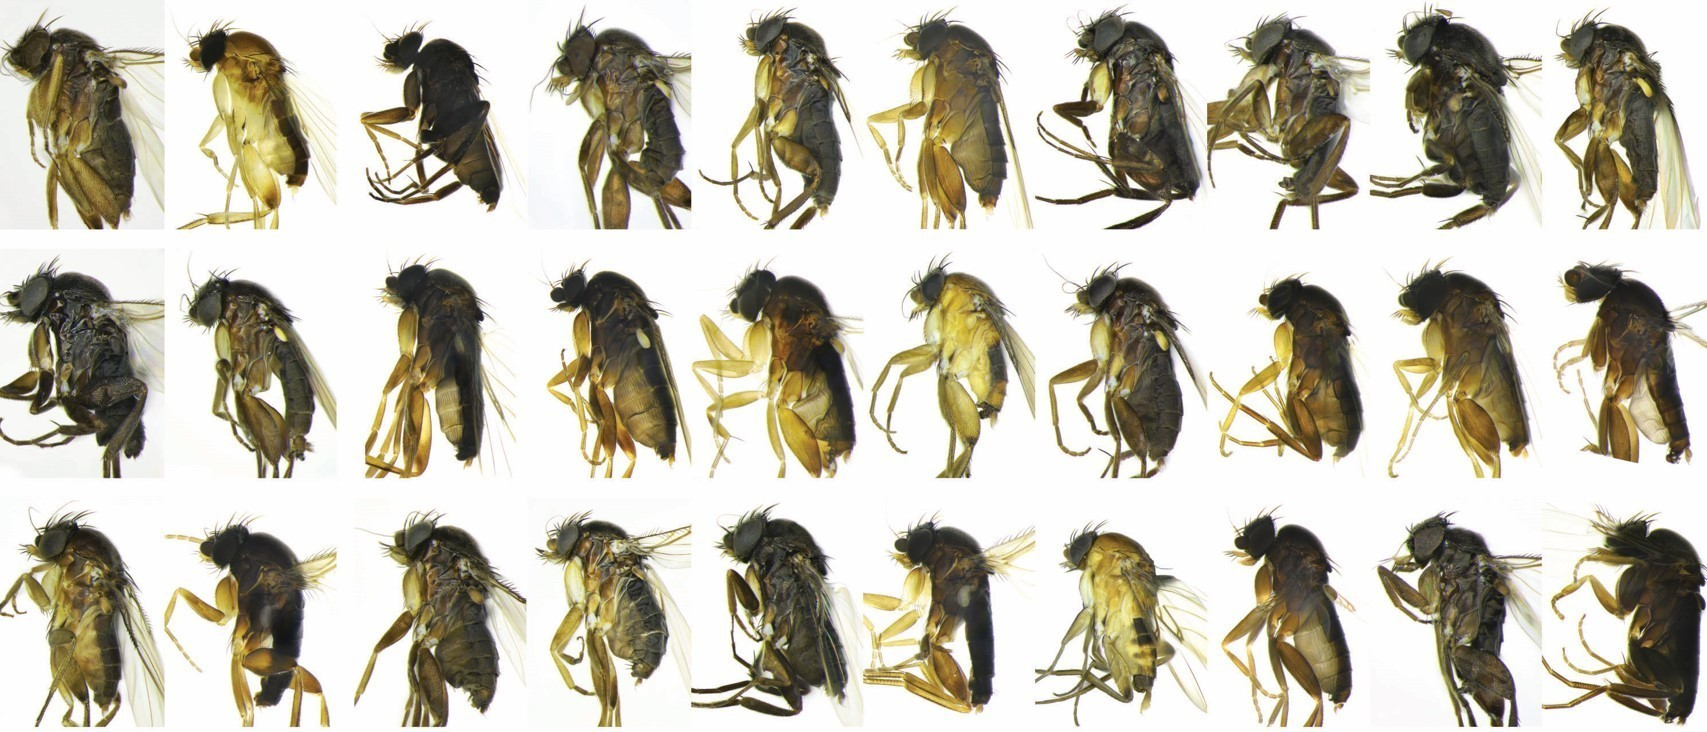 30 never-before-seen species of flies discovered in Los Angeles